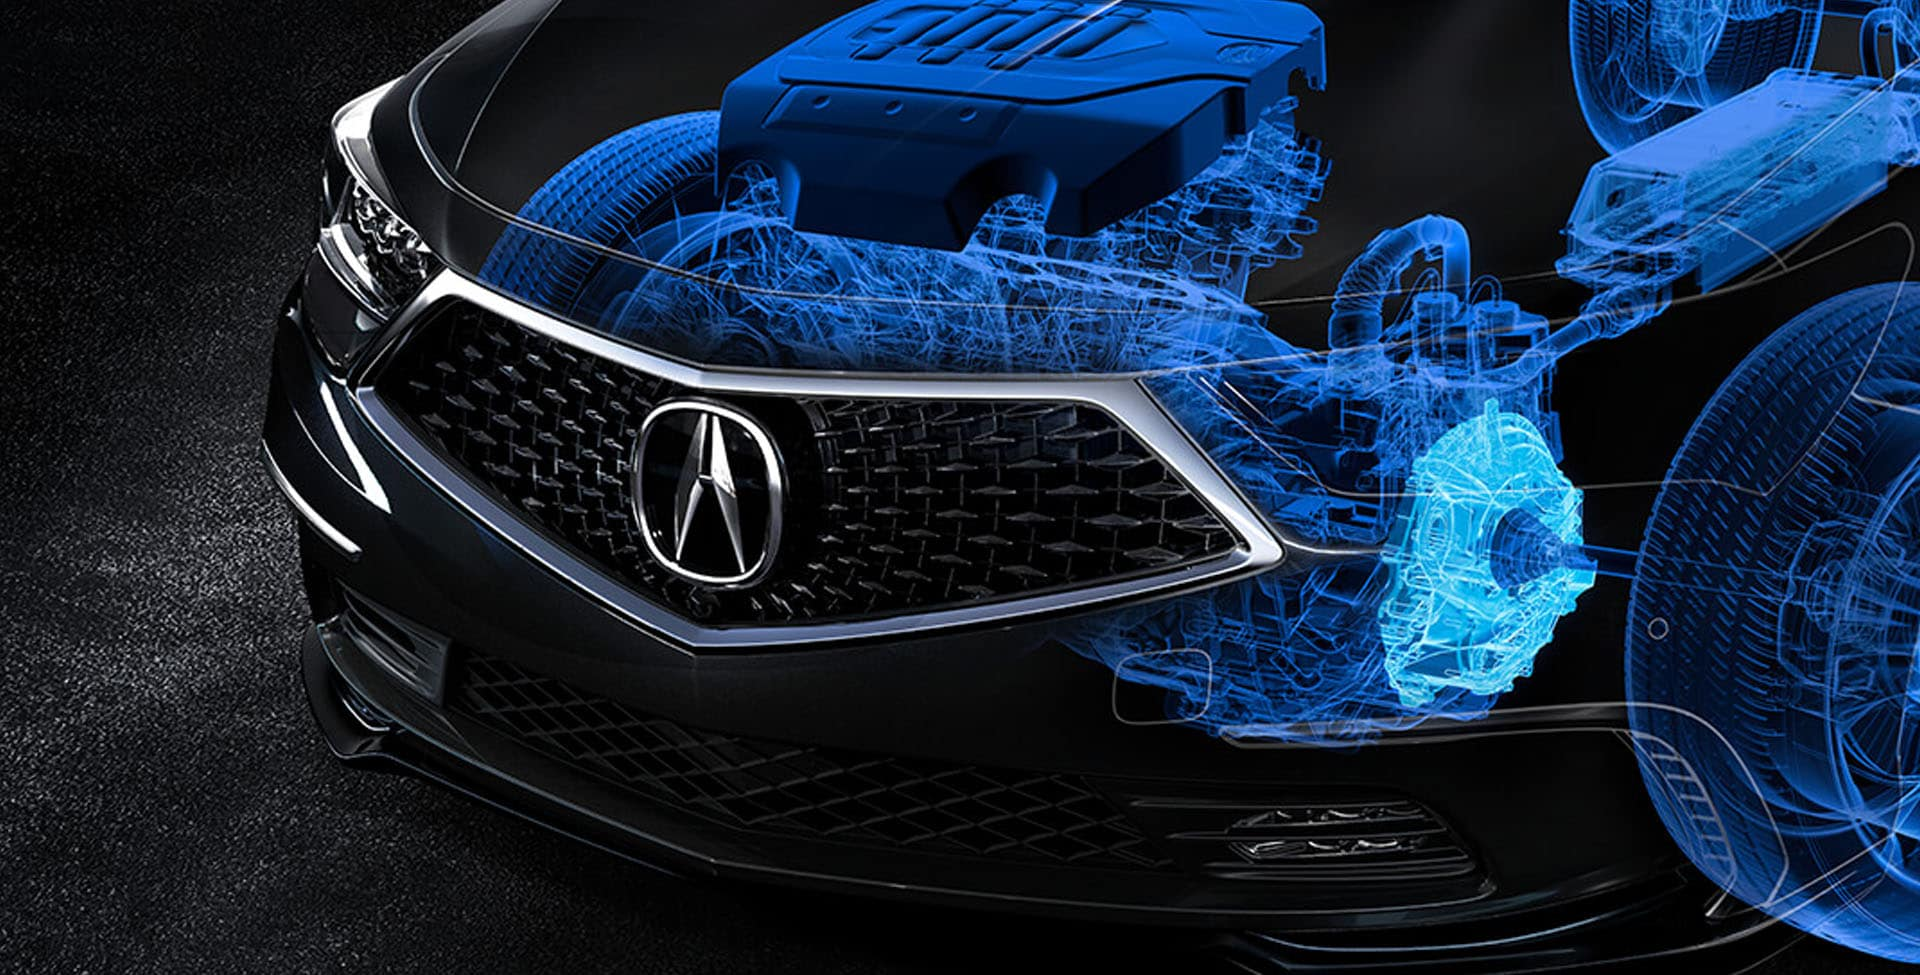 X-ray view of Acura RLX